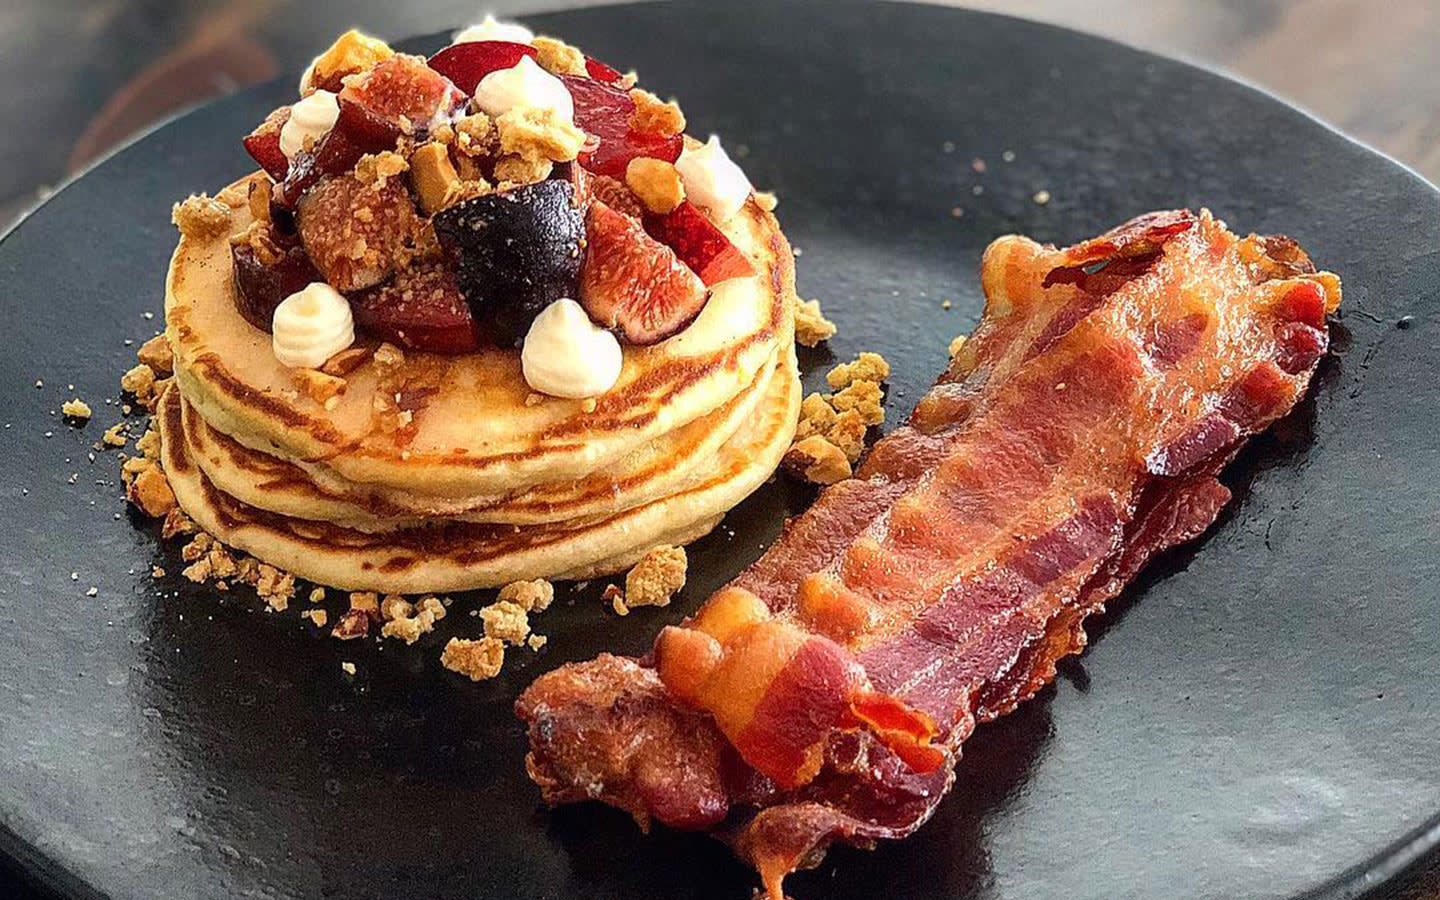 Copper Pot Bed and Breakfast pancakes and bacon